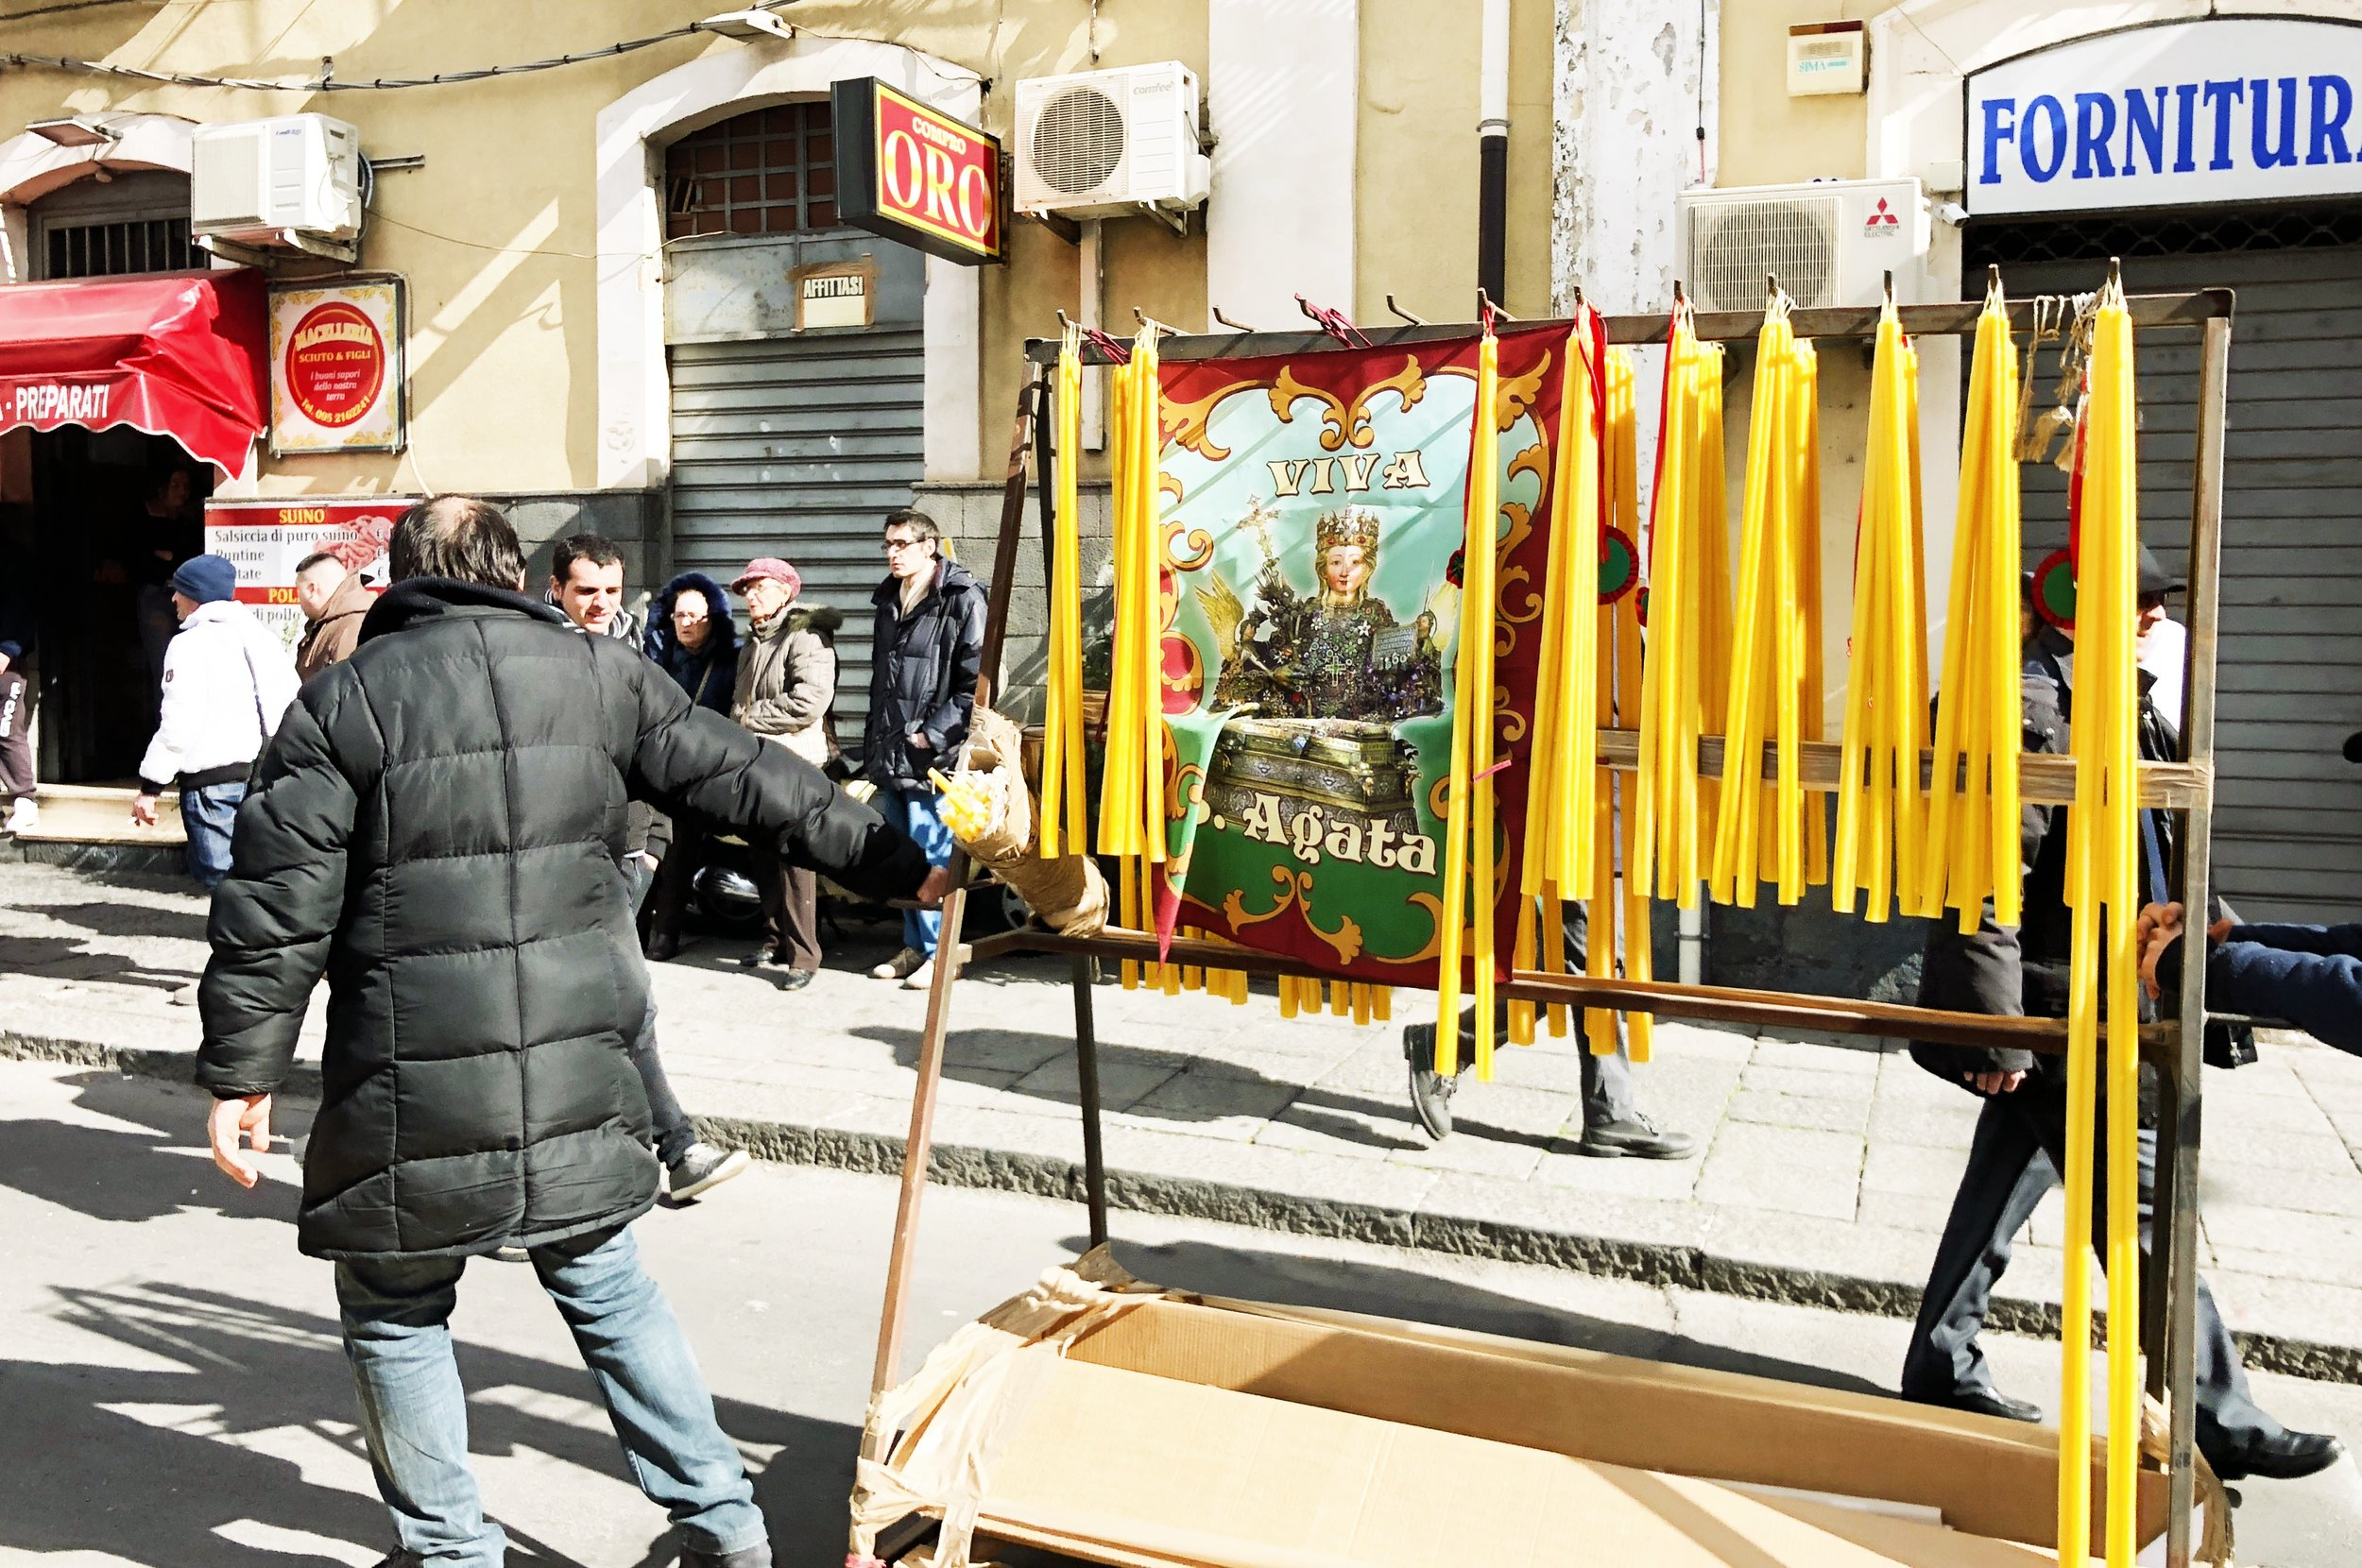 Vendors sell 2 euro candles to give to the saint